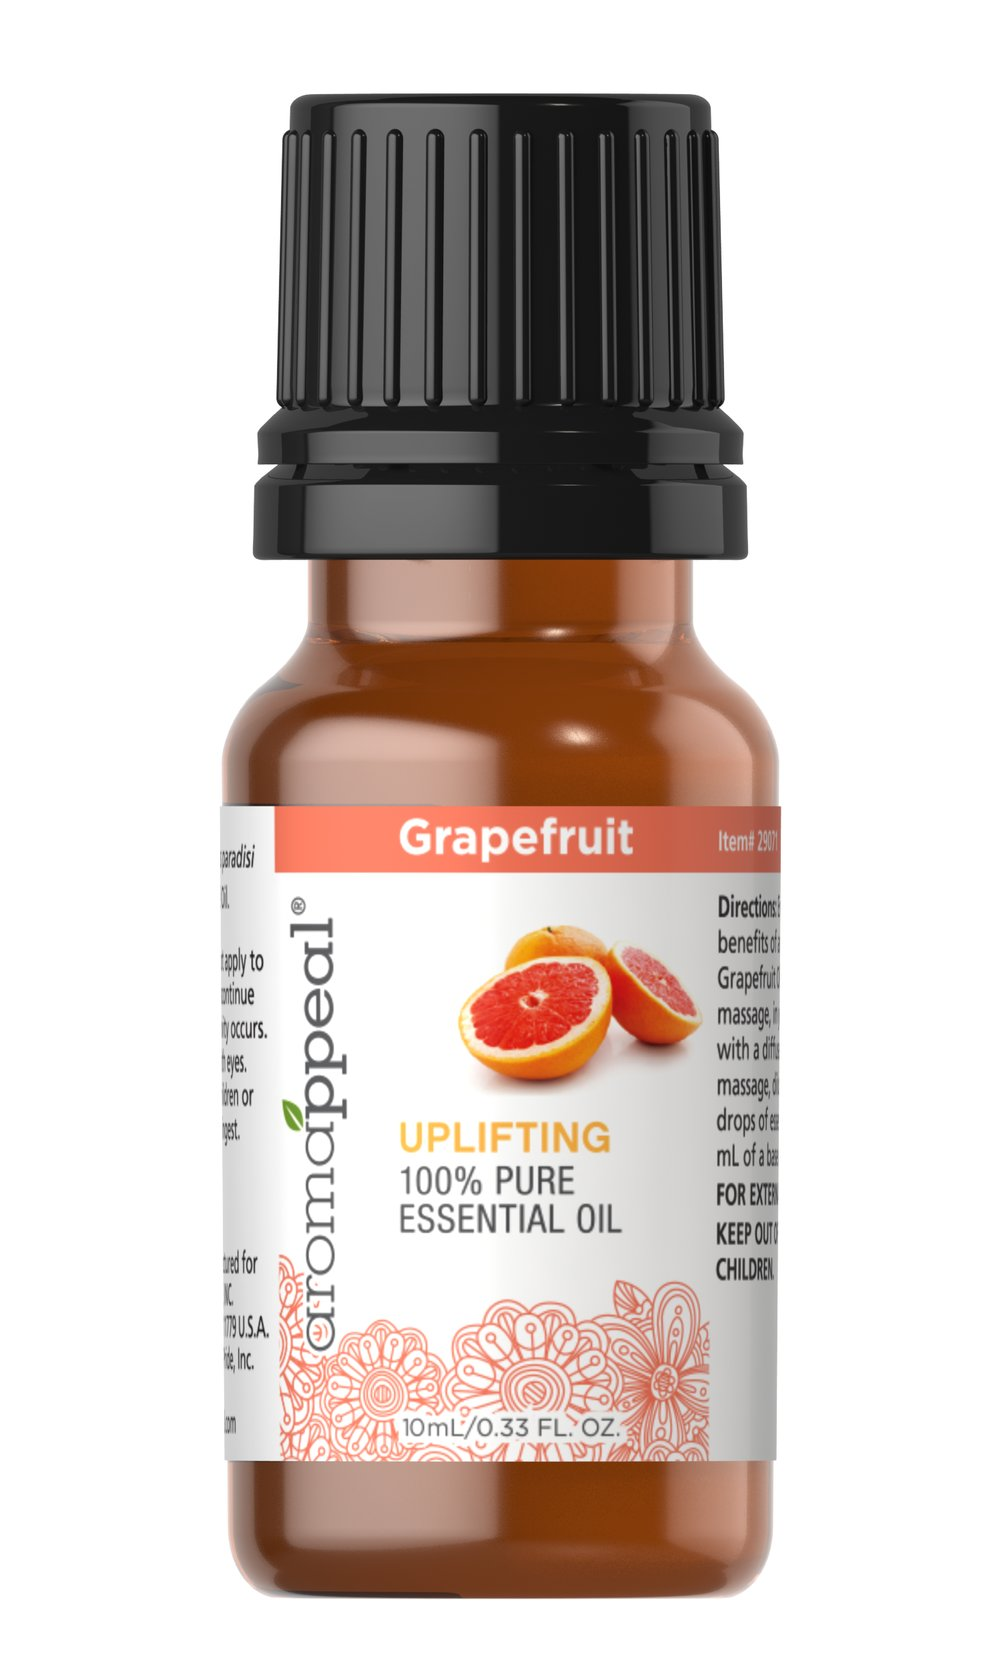 "Grapefruit 100% Pure Essential Oil <p>Illuminate your senses and explore pure aromatic pleasure with the citrusy zing of Grapefruit Oil. This refreshing oil is stimulating and uplifting, and has been traditionally used to rejuvenate your entire body, especially in the areas of respiratory health.</p><ul><li><span class=""bold-pink"">Traditional Uses: </span>Respiratory cleansing and purifying, uplifting, refreshing, stimulating, rejuvenating especially"